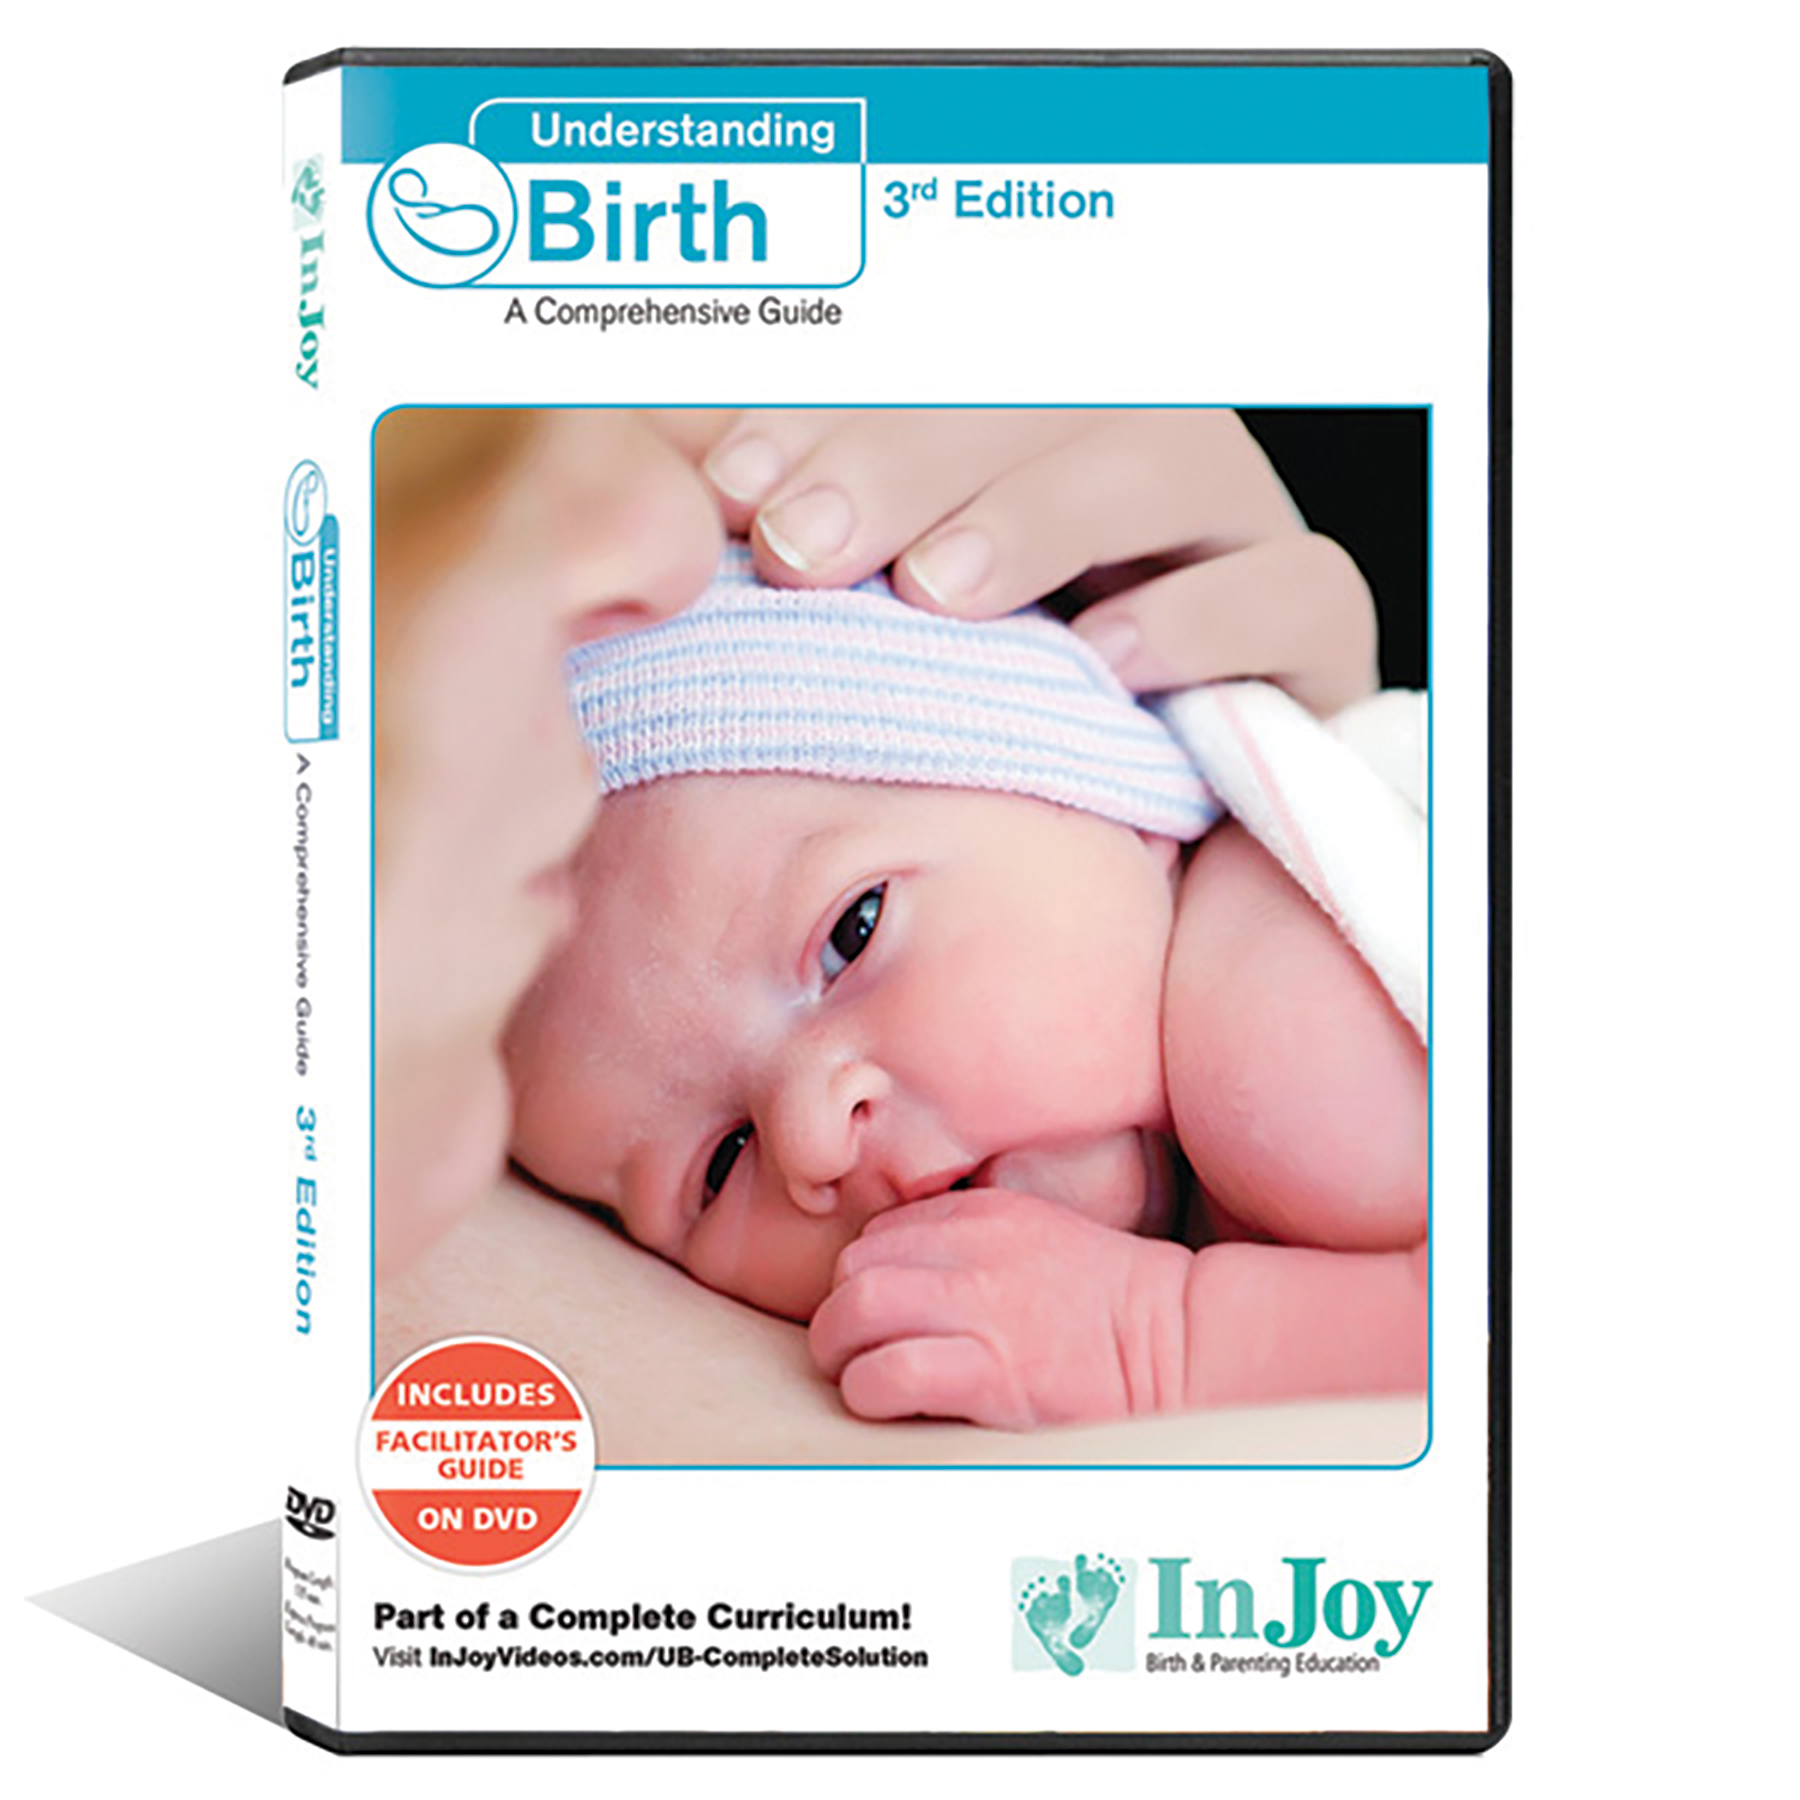 Understanding Birth DVD Spanish 3rd edition, cover image skin to skin contact, Childbirth Graphics, 48538